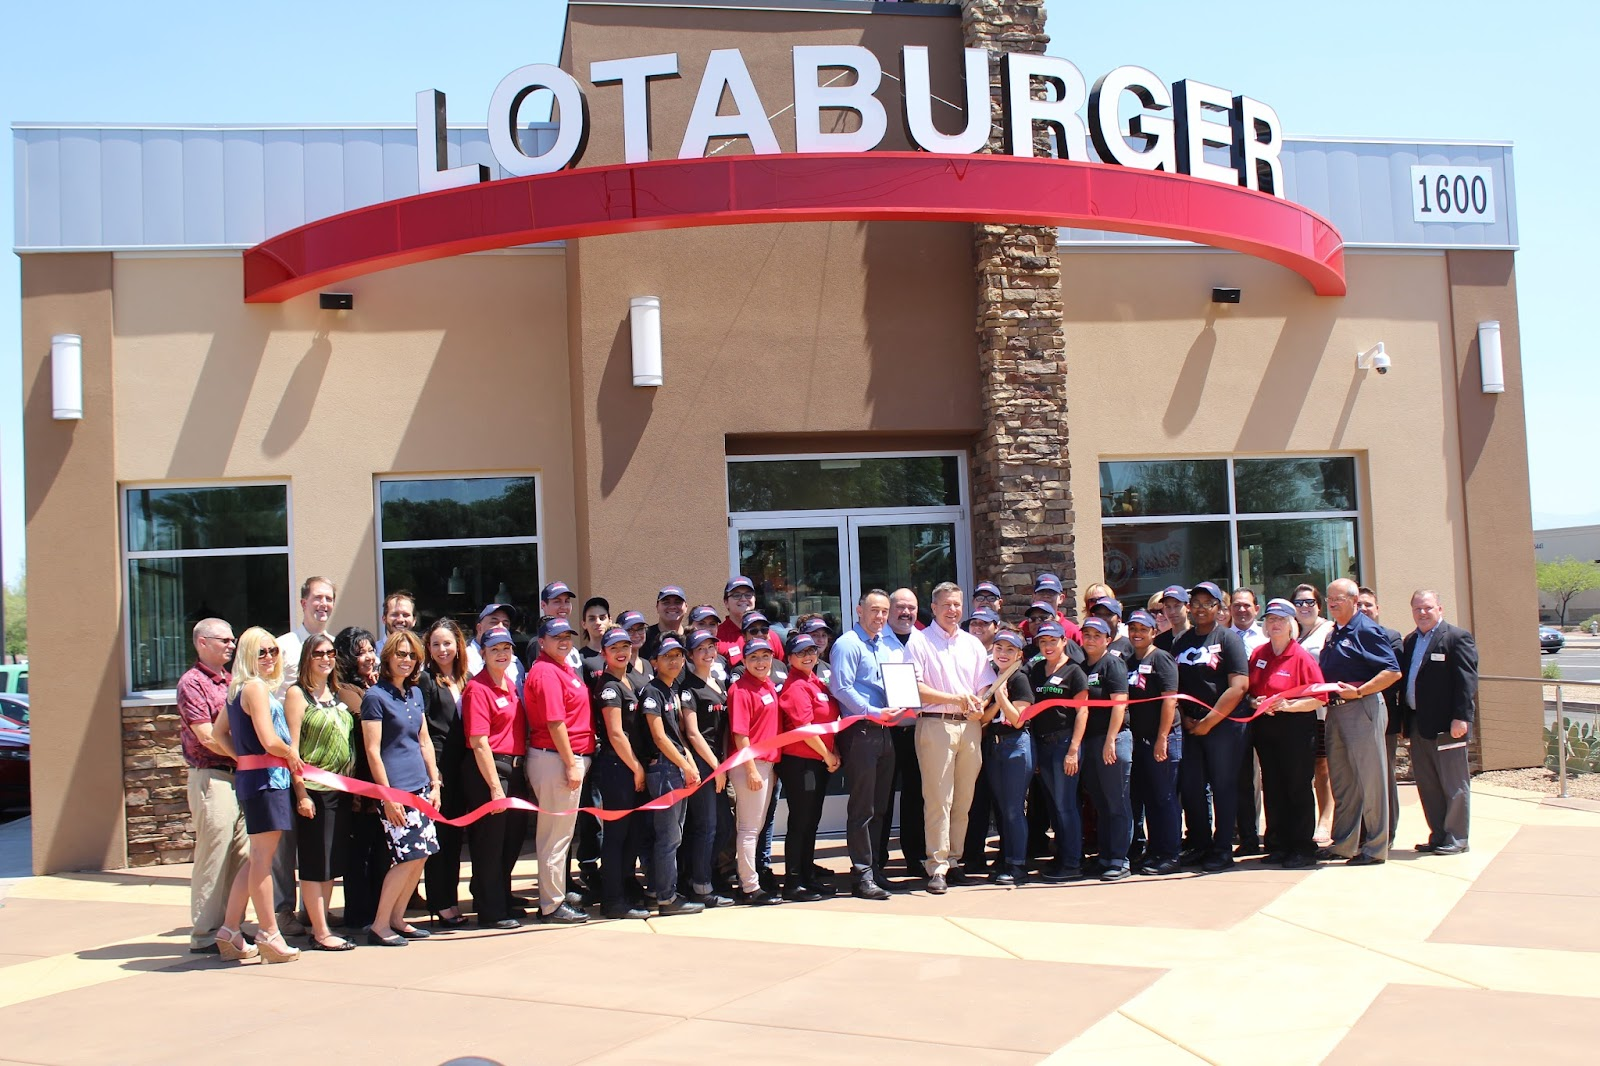 Congratulations to Blake's Lotaburger, located at 1600 W. Valencia Road, on their Grand Opening!  Since its founding in 1952, Blake's Lotaburger now has 75 locations in New Mexico, 3 in El Paso, Texas and 2 in Tucson, Arizona.  Known for our cooked to order burgers and use of hatch green chile, Blake's Lotaburger is thrilled to be a part of the Tucson community.